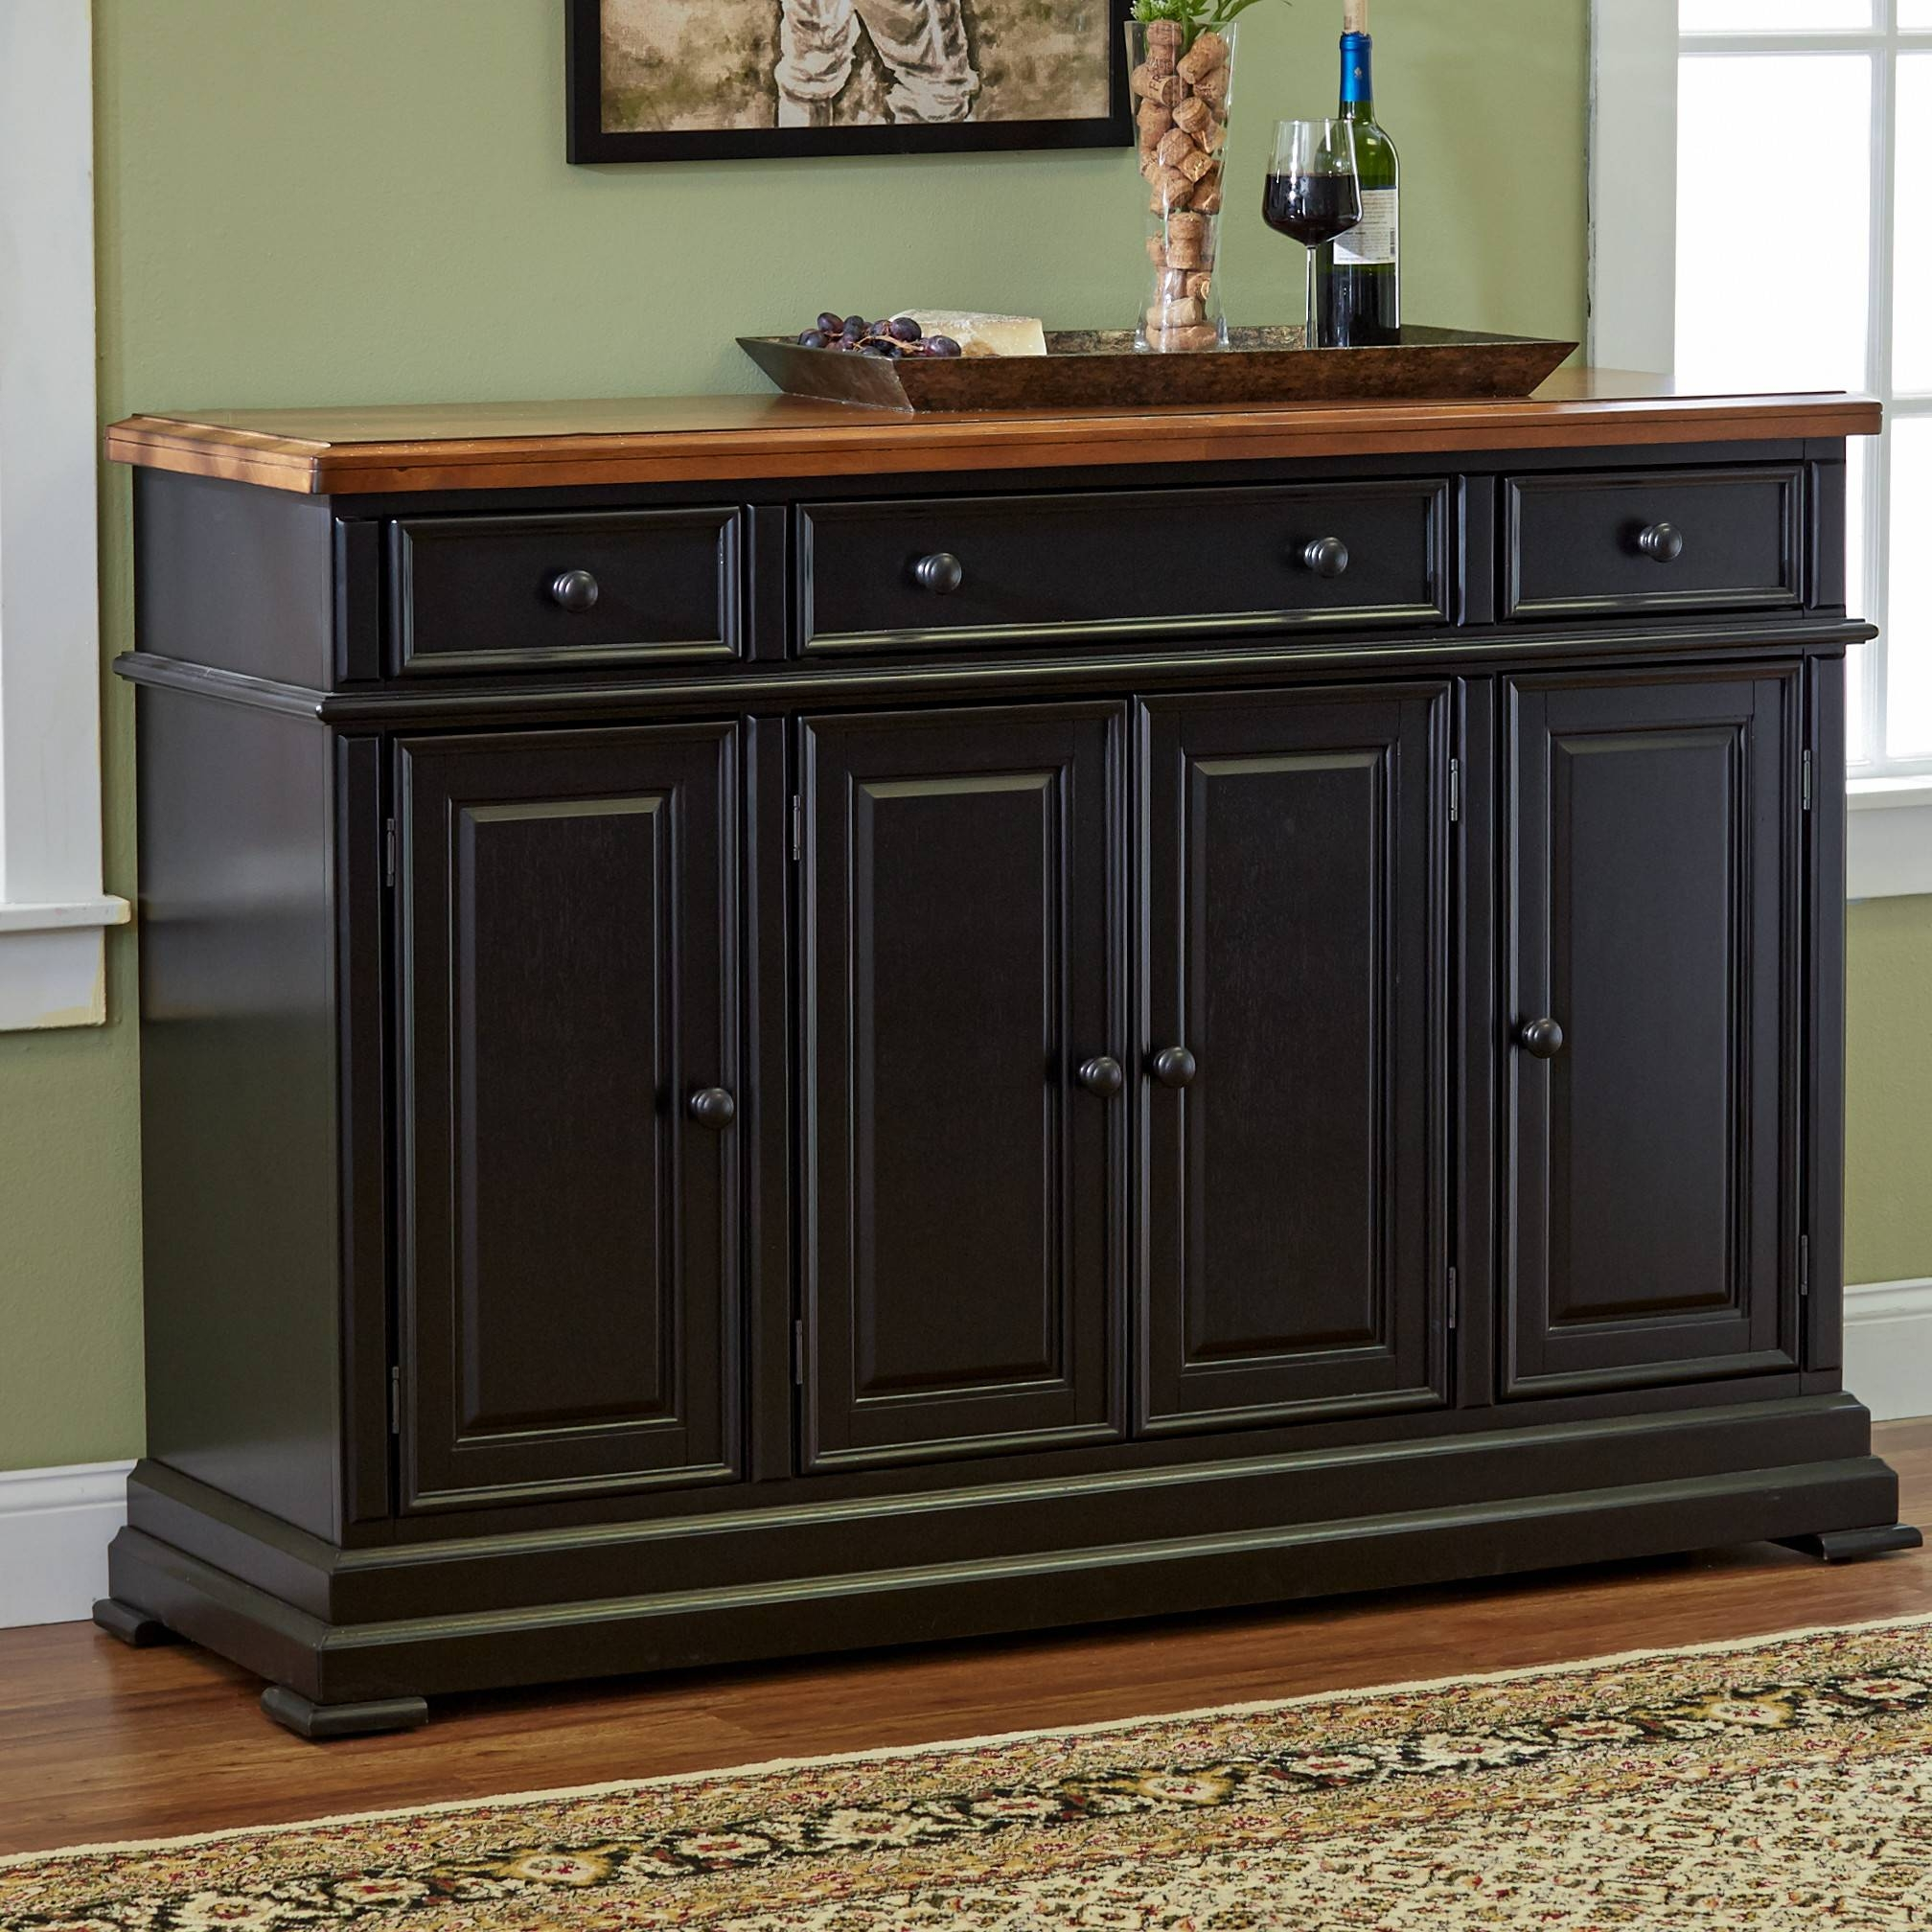 Furniture: Interesting Buffets And Sideboards For Home Furniture Inside Country Sideboards (View 10 of 20)